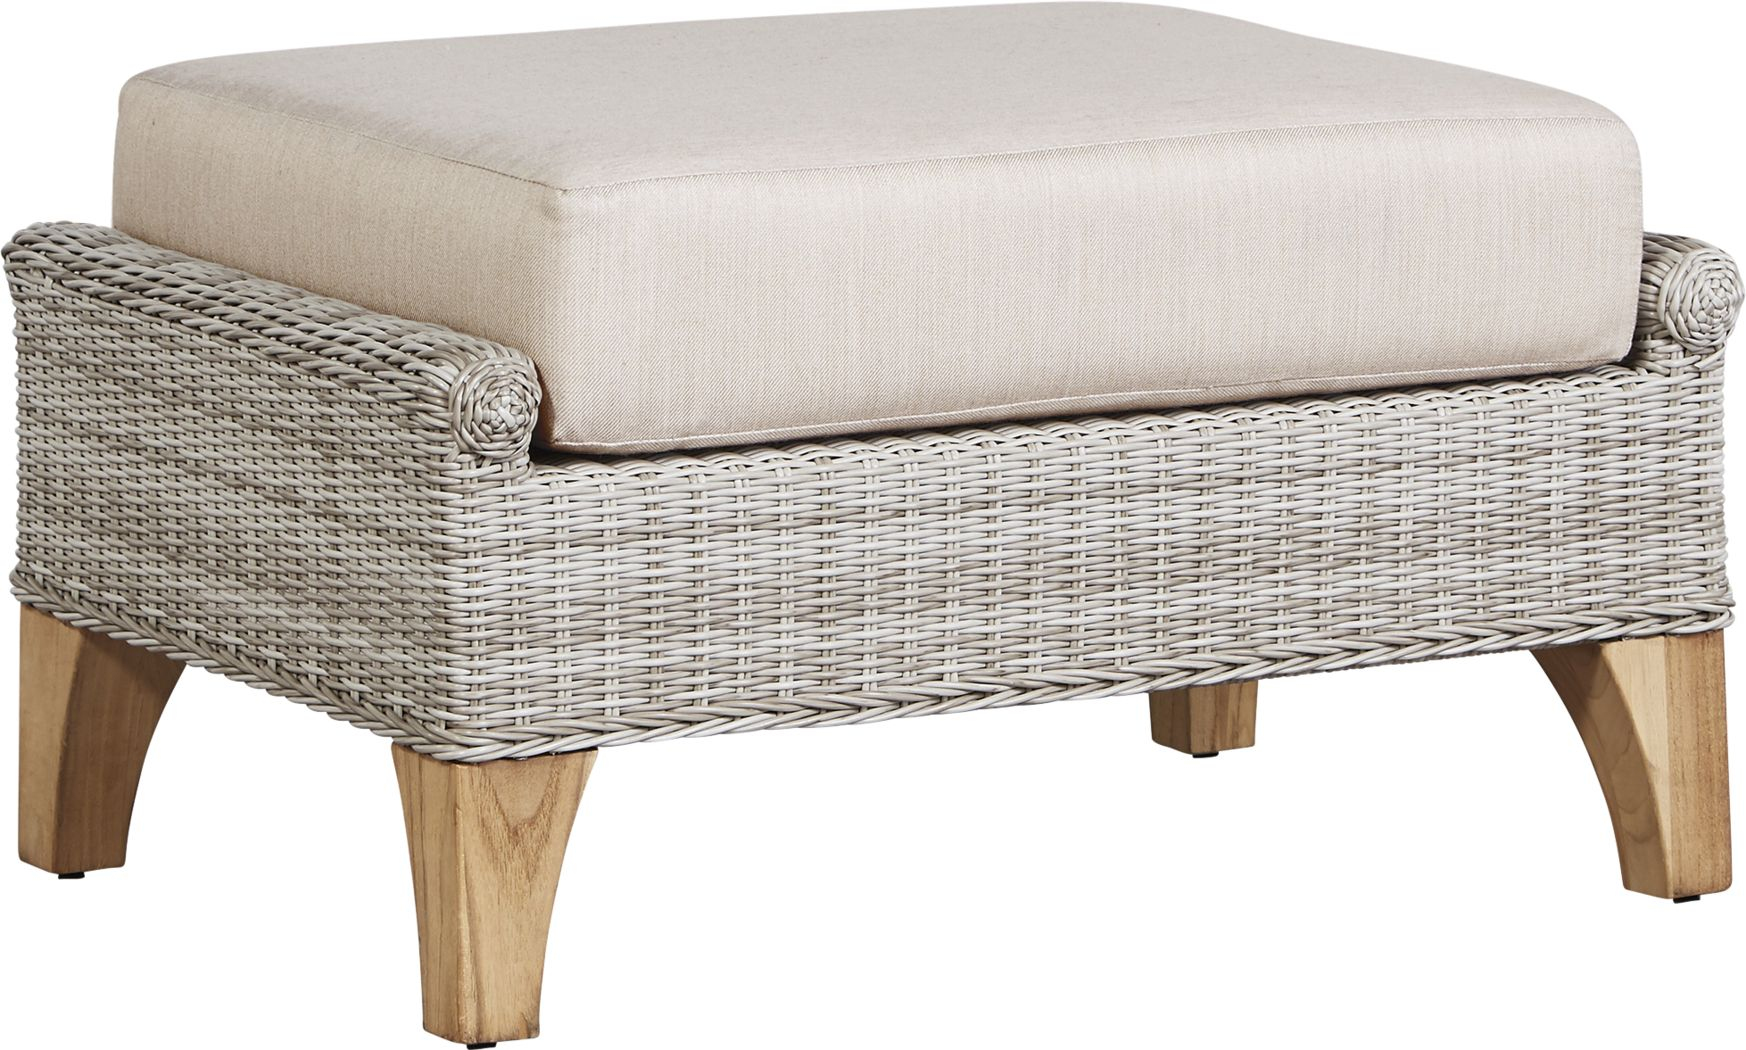 Cindy Crawford Home Hamptons Cove Gray Outdoor Ottoman with Flax Cushion